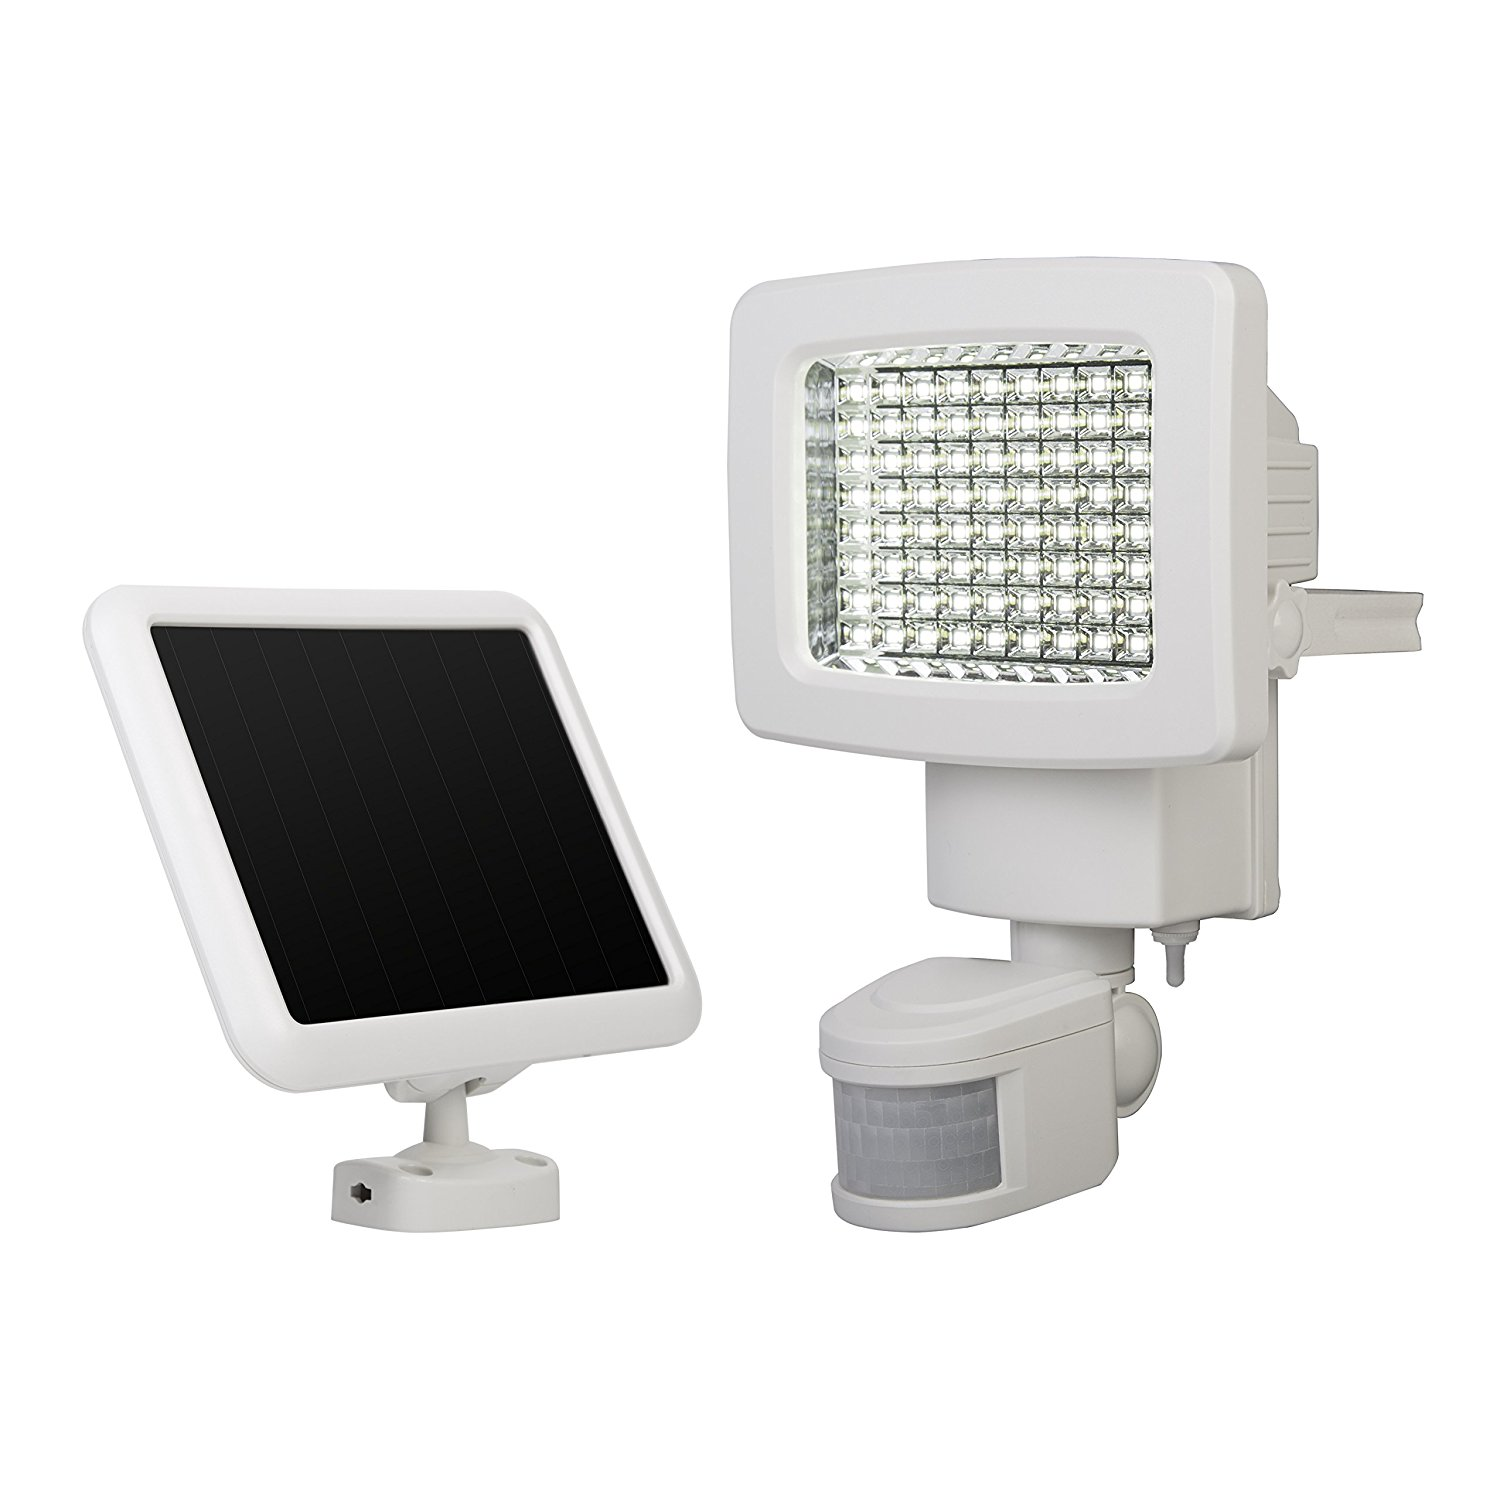 Sunforce 82080 80 LED Solar Motion Light  sc 1 st  LEDwatcher & Best solar powered security and motion lights | LEDwatcher